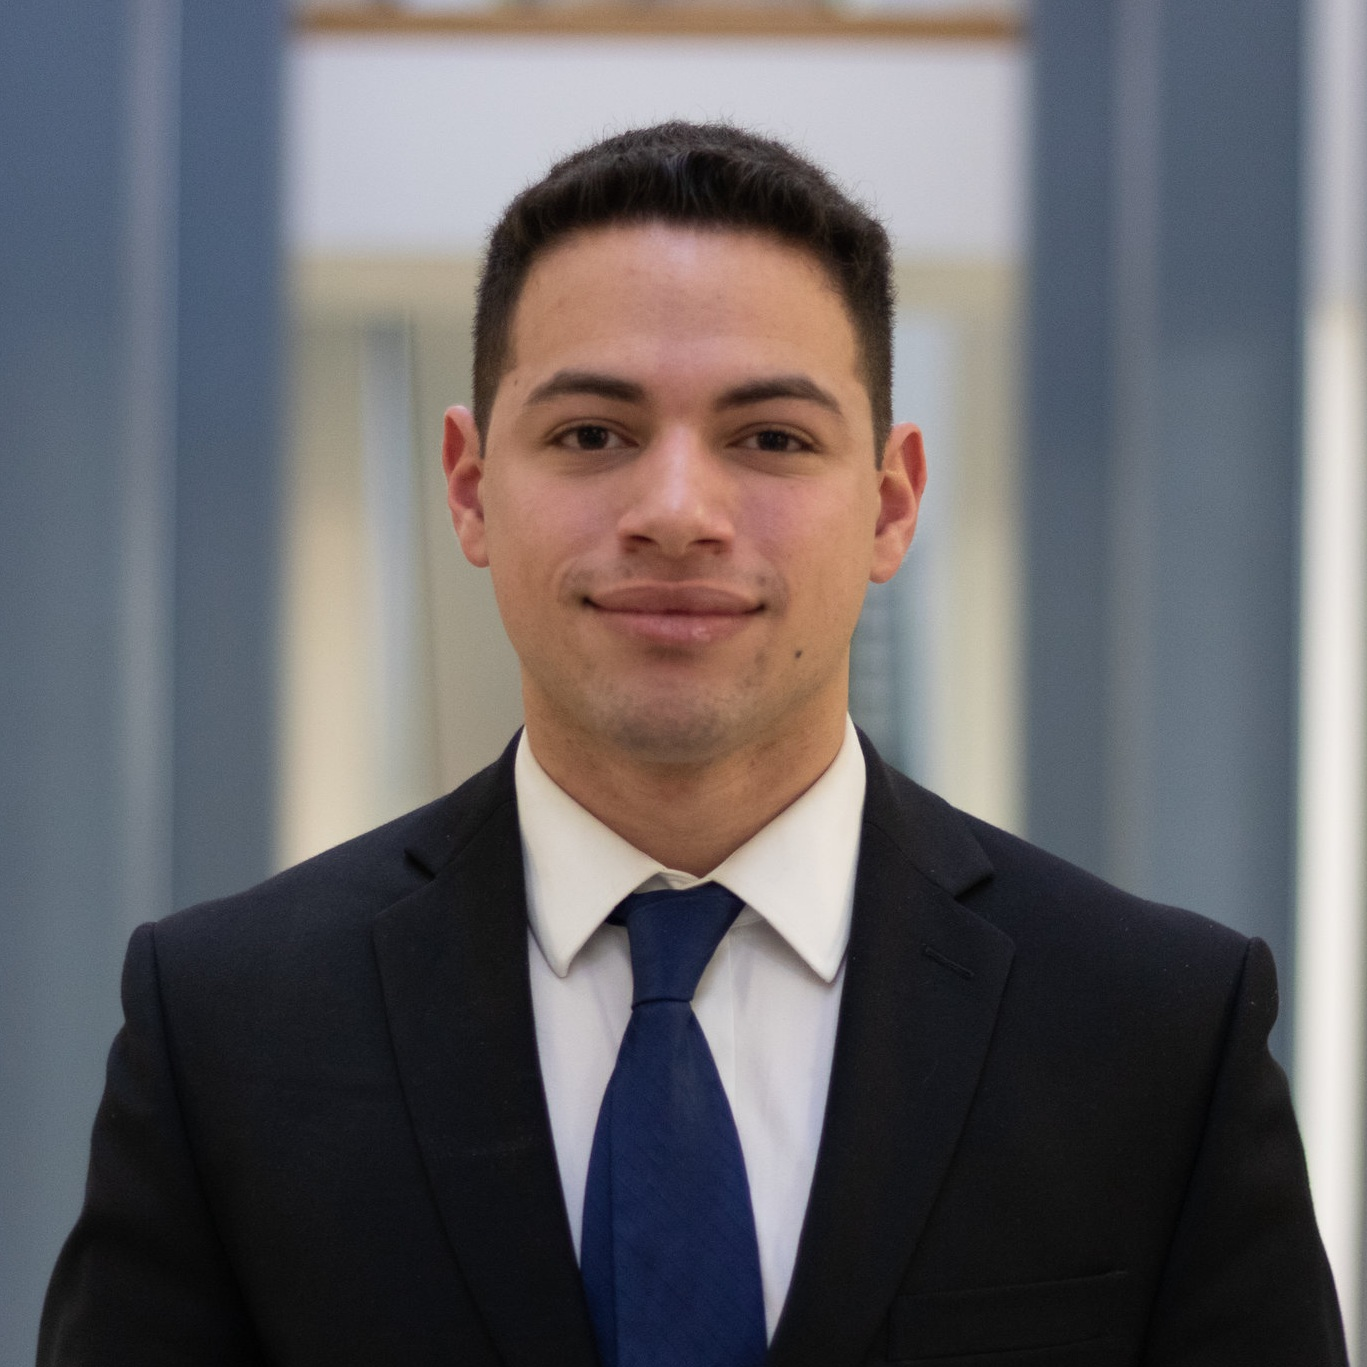 FINANCE, 2020   Michael joined LCG in the spring of 2016. In fall of 2018, he took on the position of Co-Director, where his primary duties include overseeing the Analyst Program and sourcing firms for Analysts to collaborate with throughout the semester. Last Summer, Michael interned at Calvin Klein as a Merchandiser in Hong Kong.  This summer, Michael will work at Monticello Consulting Group, a management consulting firm headquartered in New York City, advising clients in the global financial services industry.